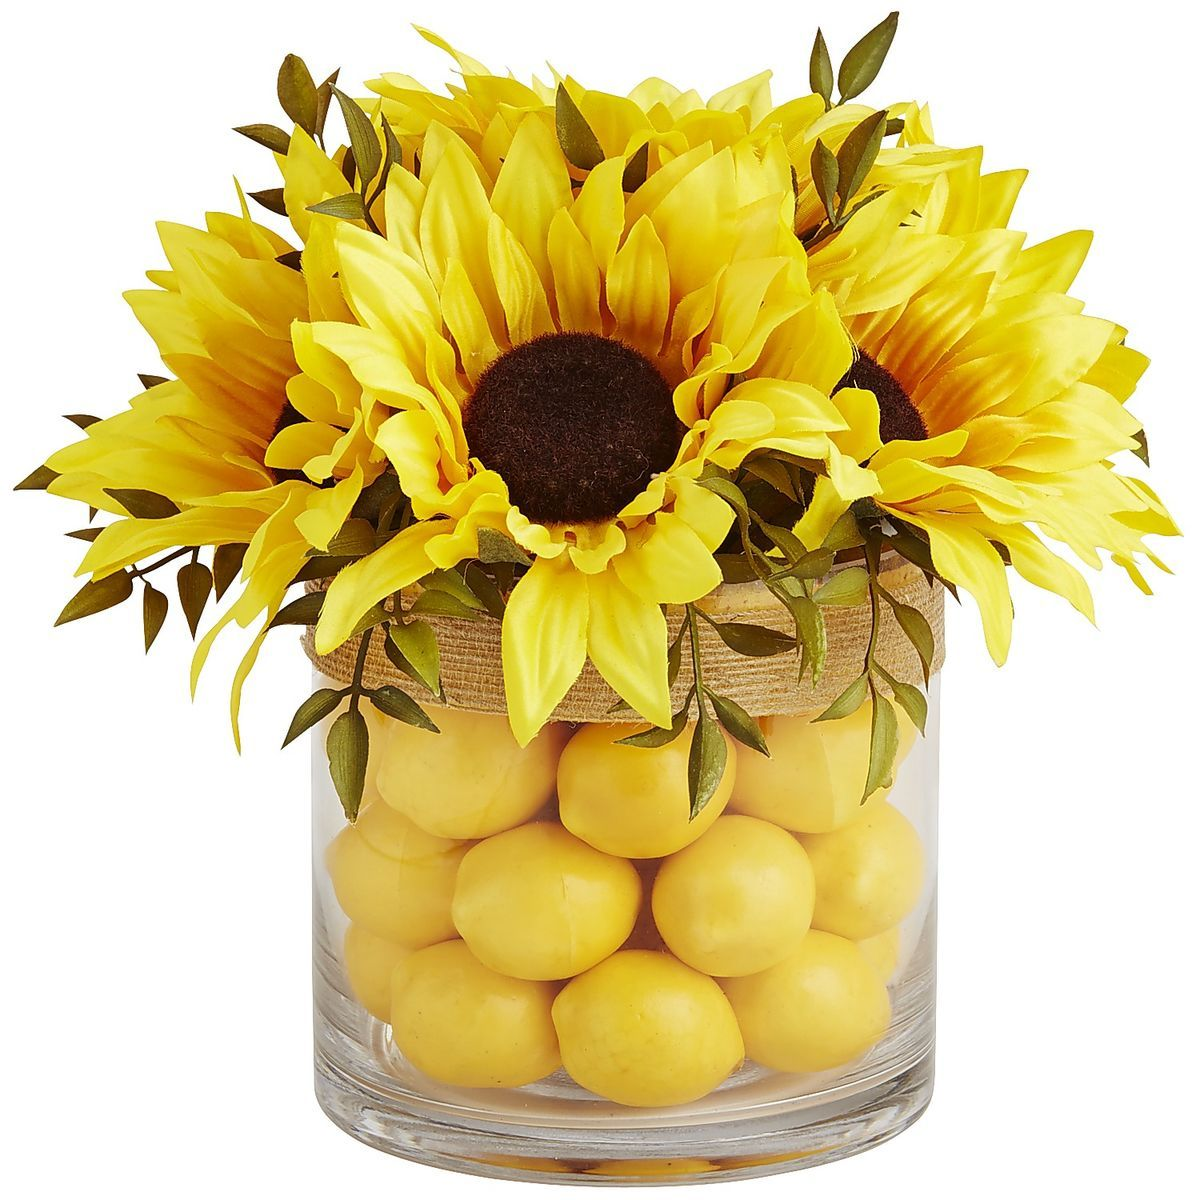 Faux Sunflower   Lemon Arrangement   Pier 1 Imports. Faux Sunflower   Lemon Arrangement   Pier 1 Imports   SUNFLOWERS